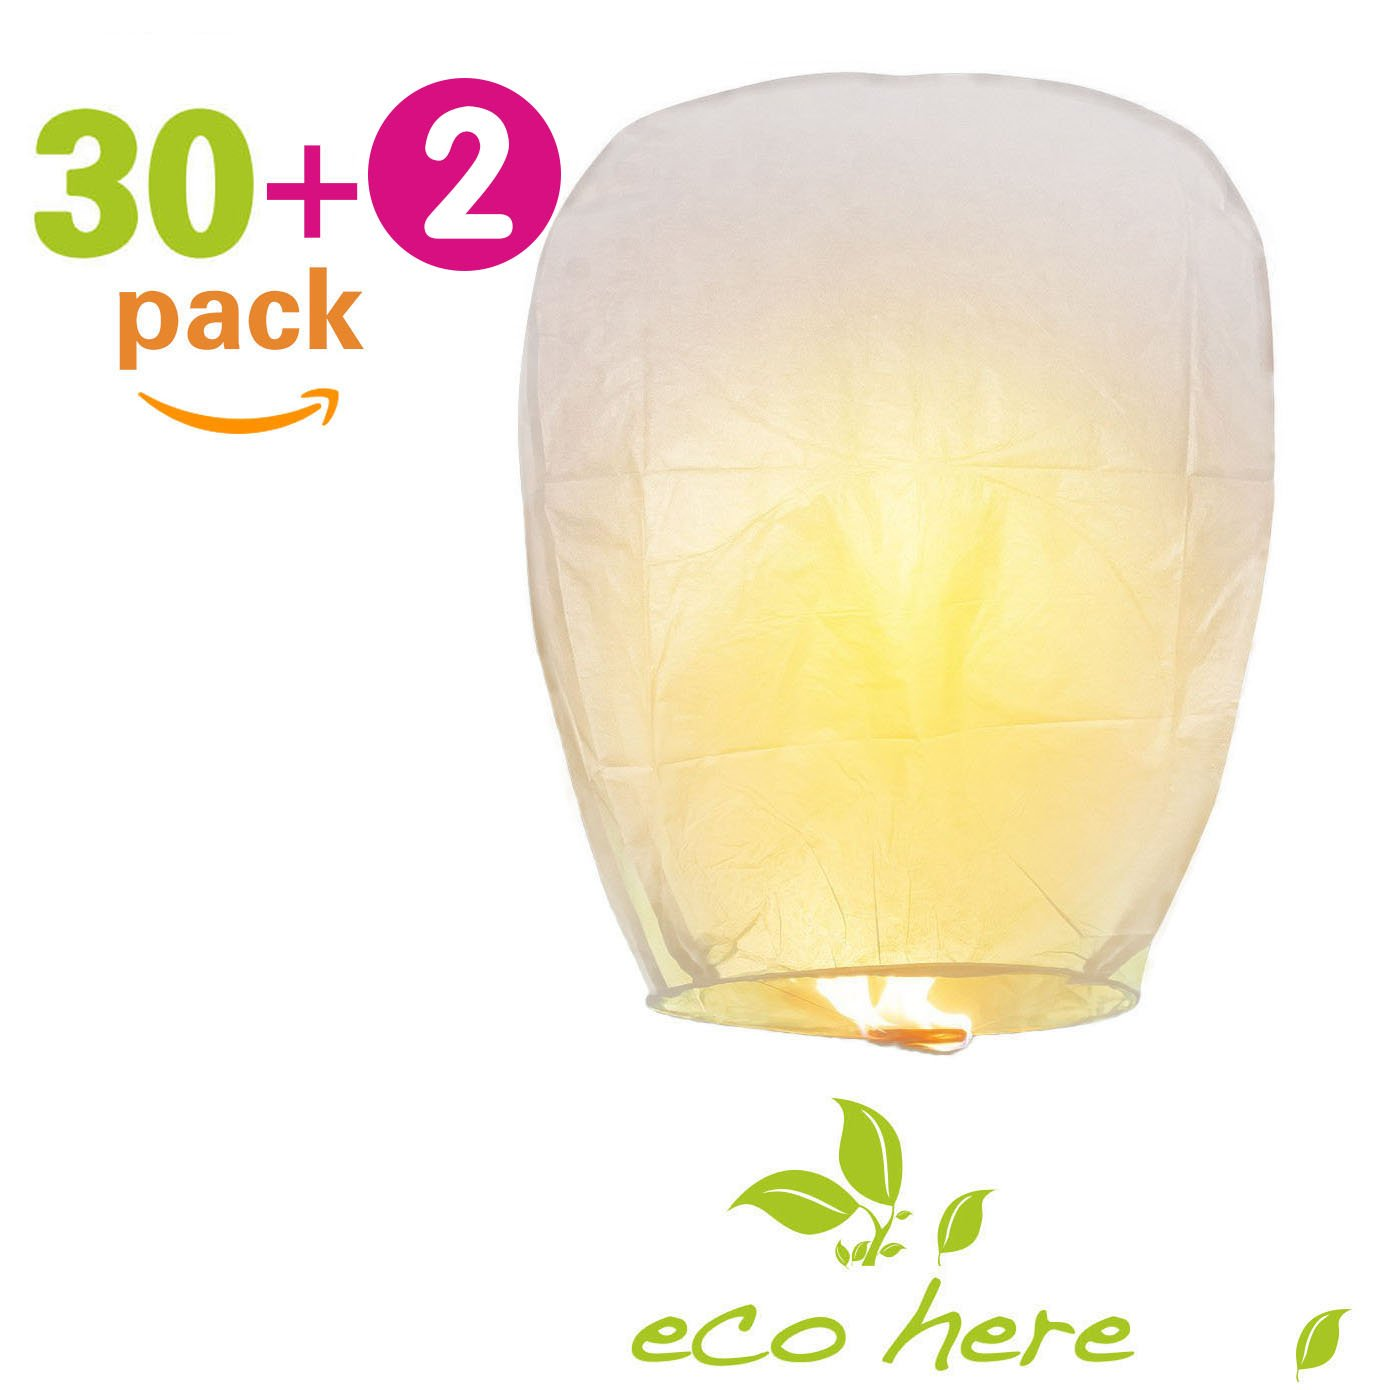 Biodegradable Chinese Lanterns Flying, 30 PCS Sky Lanterns Paper Eco Friendly, Ideal for Wedding, Birthday, Christmas, Party (White)